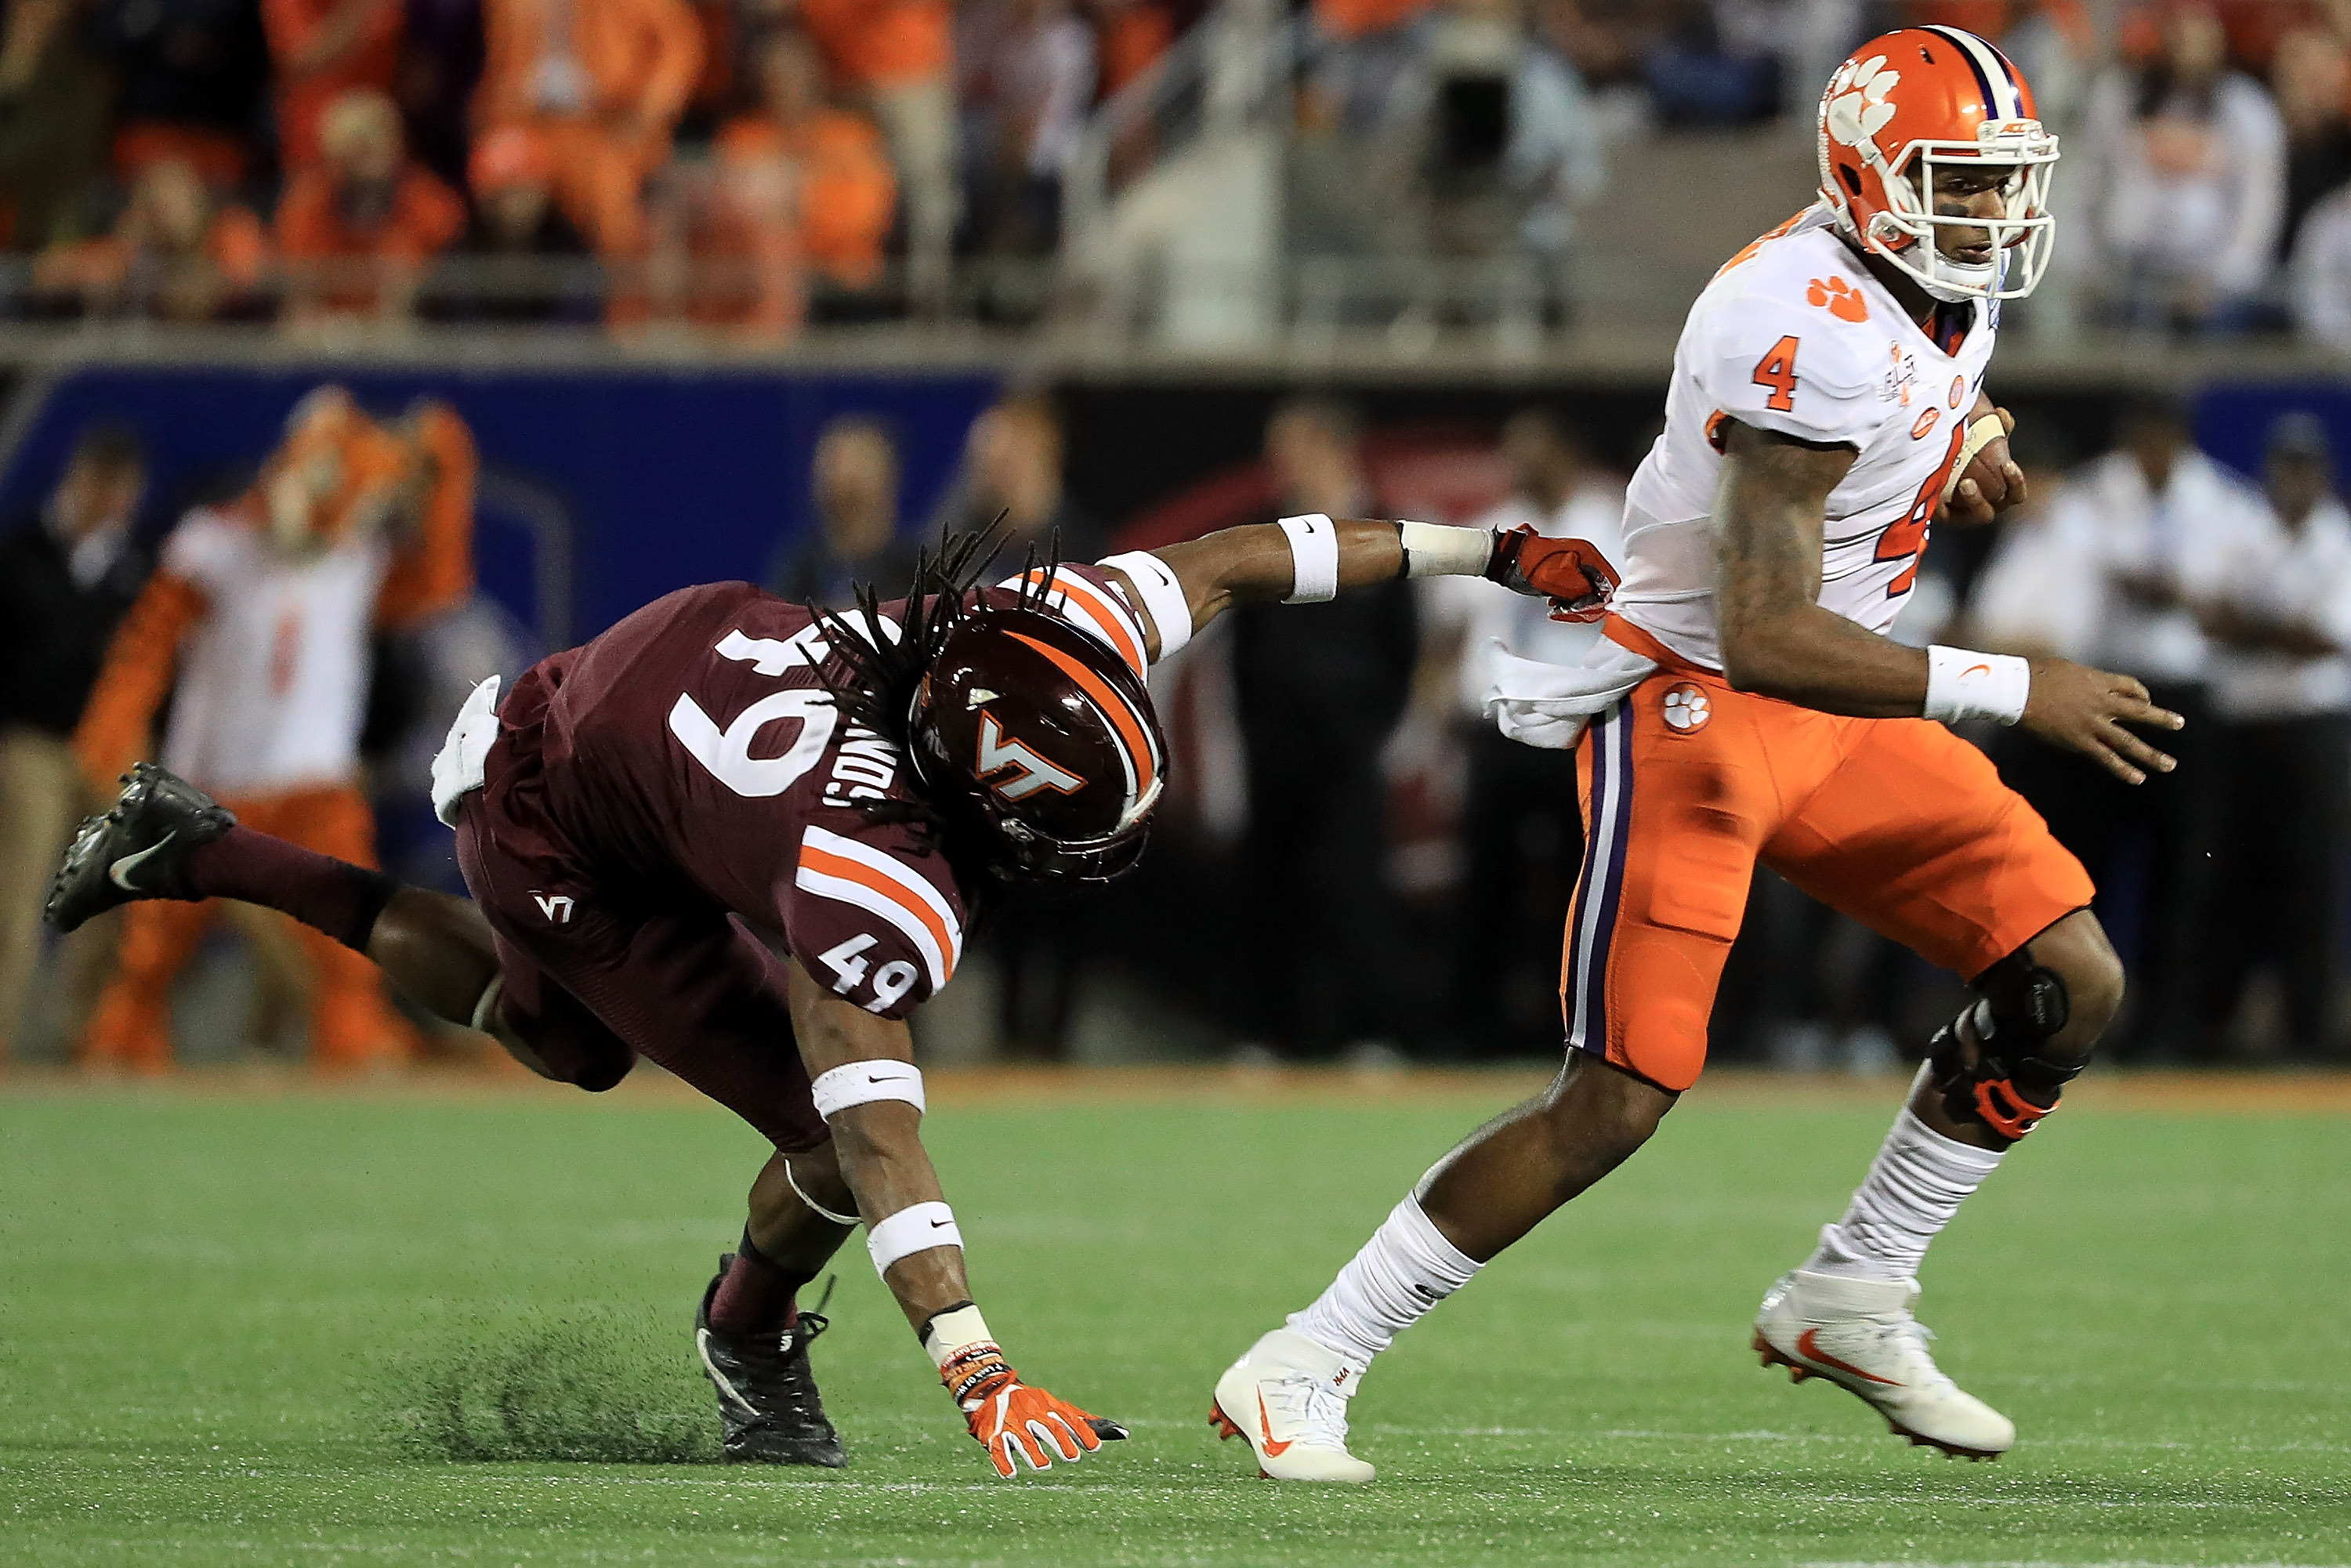 Clemson Vs Virginia Tech Score And Reaction From 2016 Acc Championship Bleacher Report Latest News Videos And Highlights